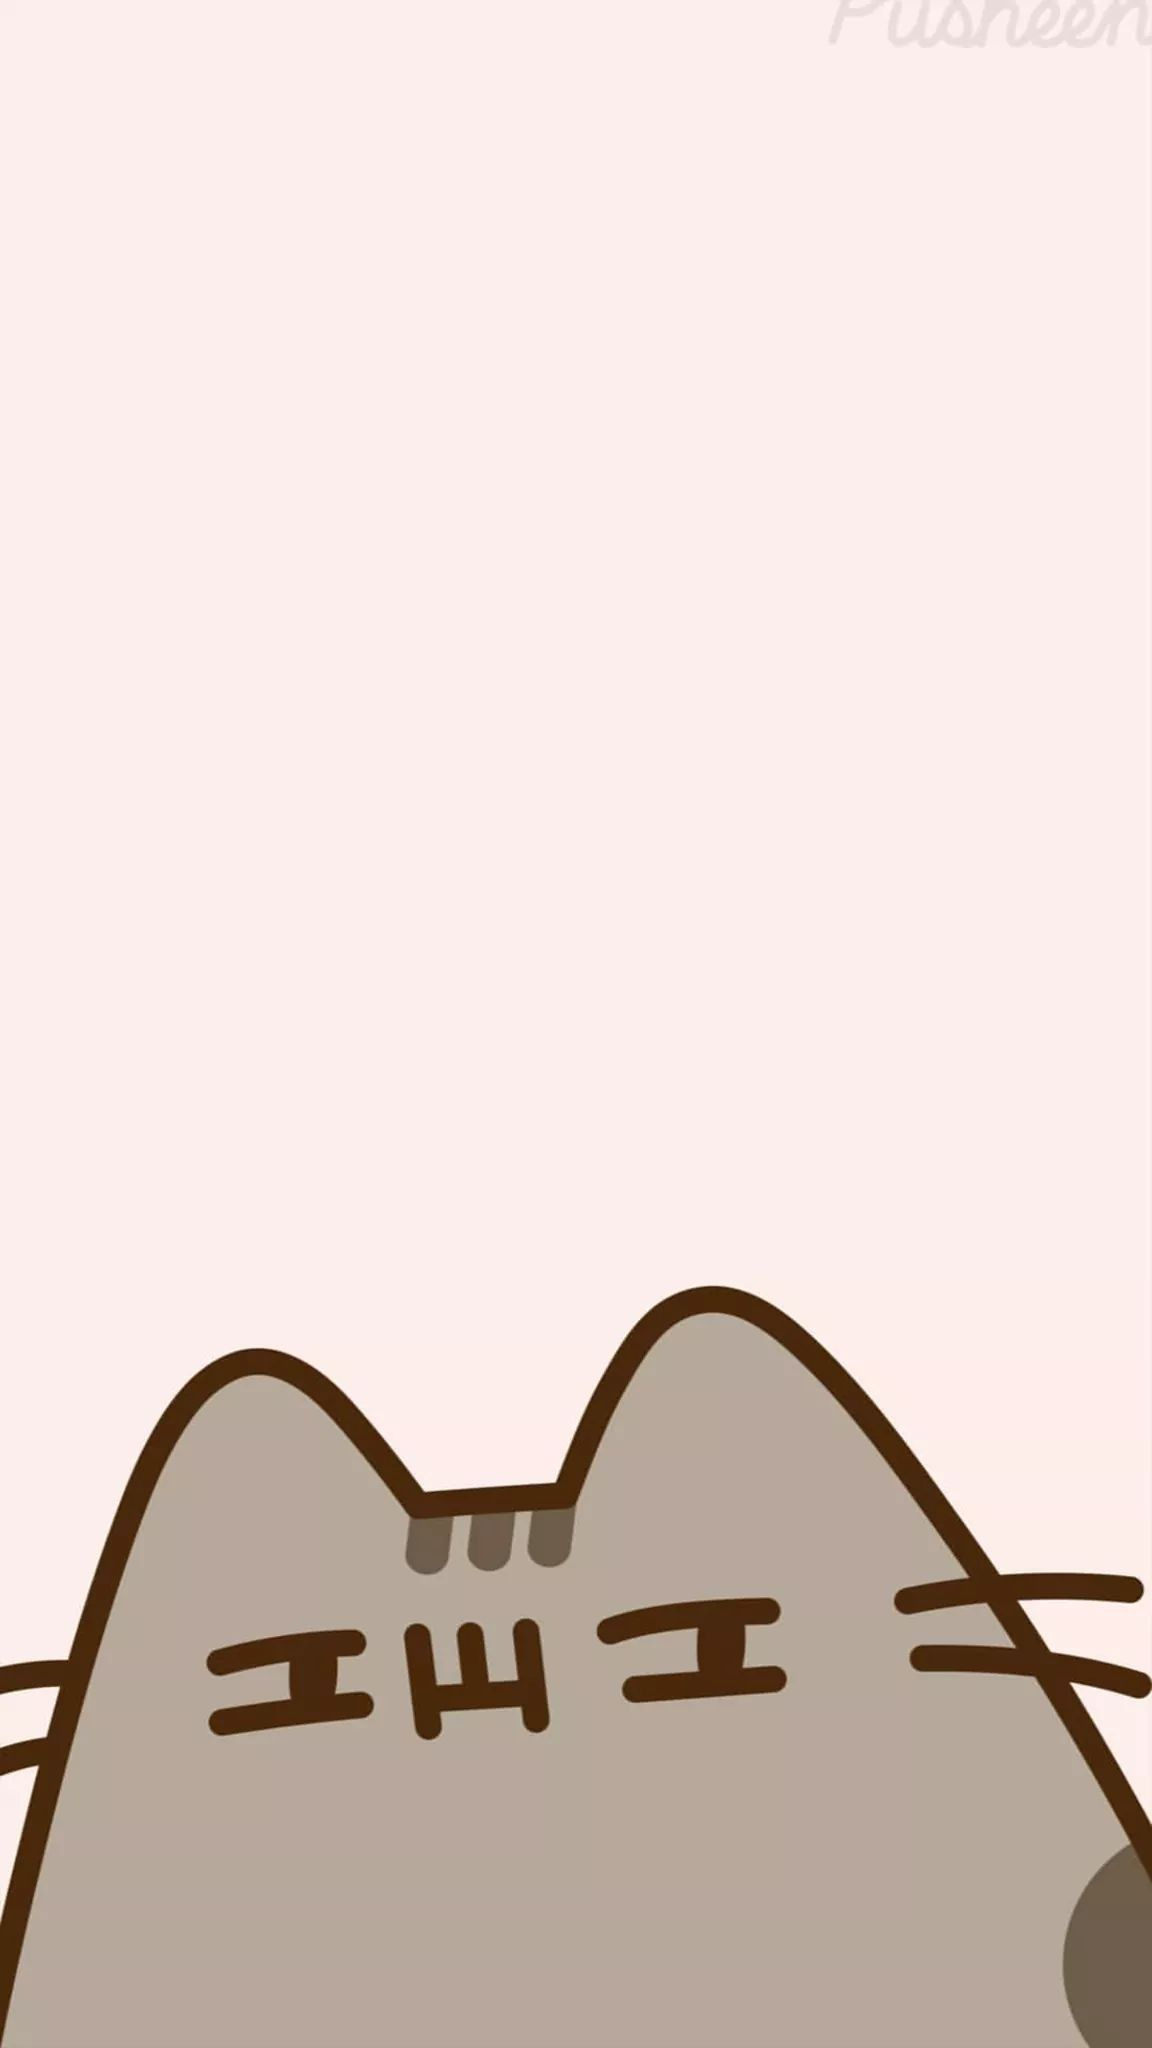 Pin By Sarah Simon On Pusheen Pusheen Cute Pusheen Pusheen Cat